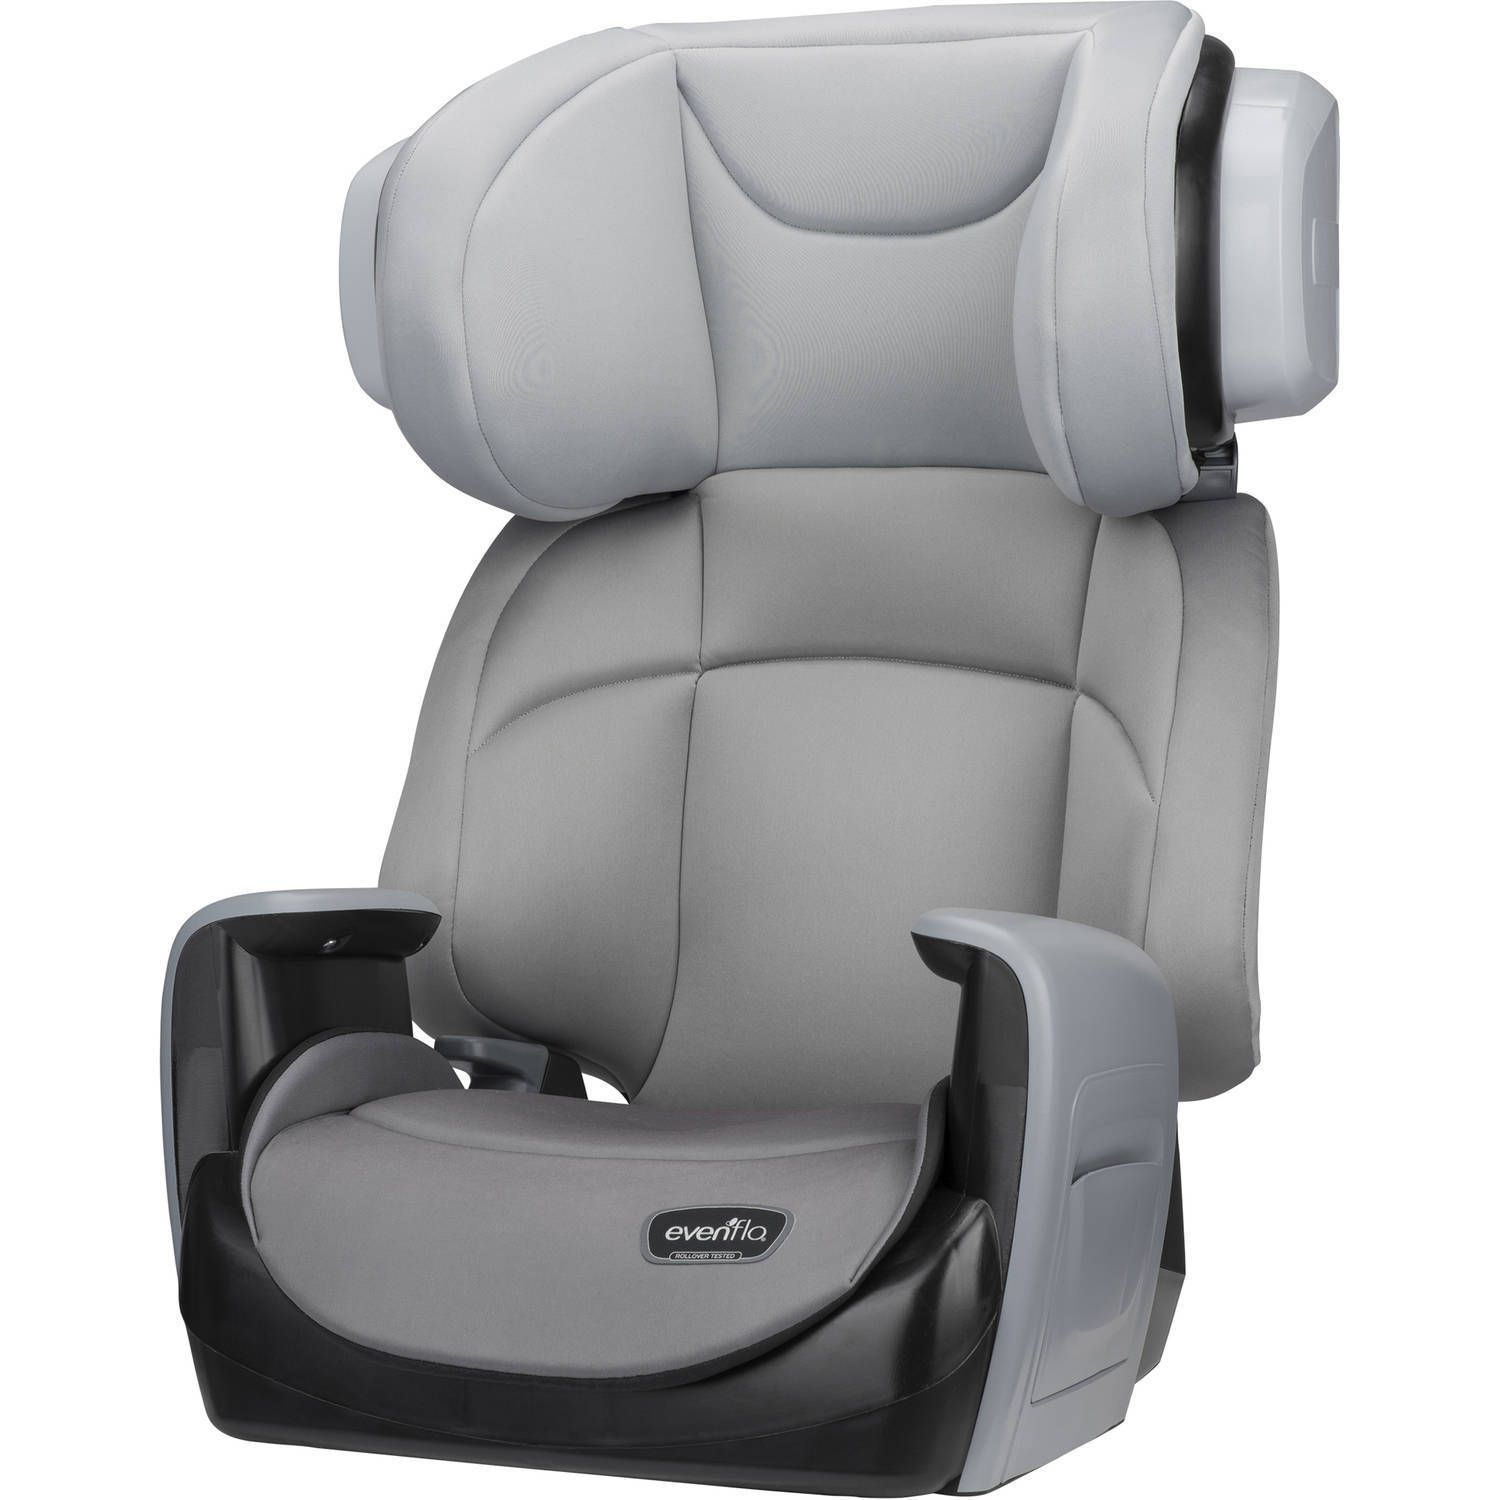 2 IN 1Car Safety Back Booster Seat Big Kid & baby